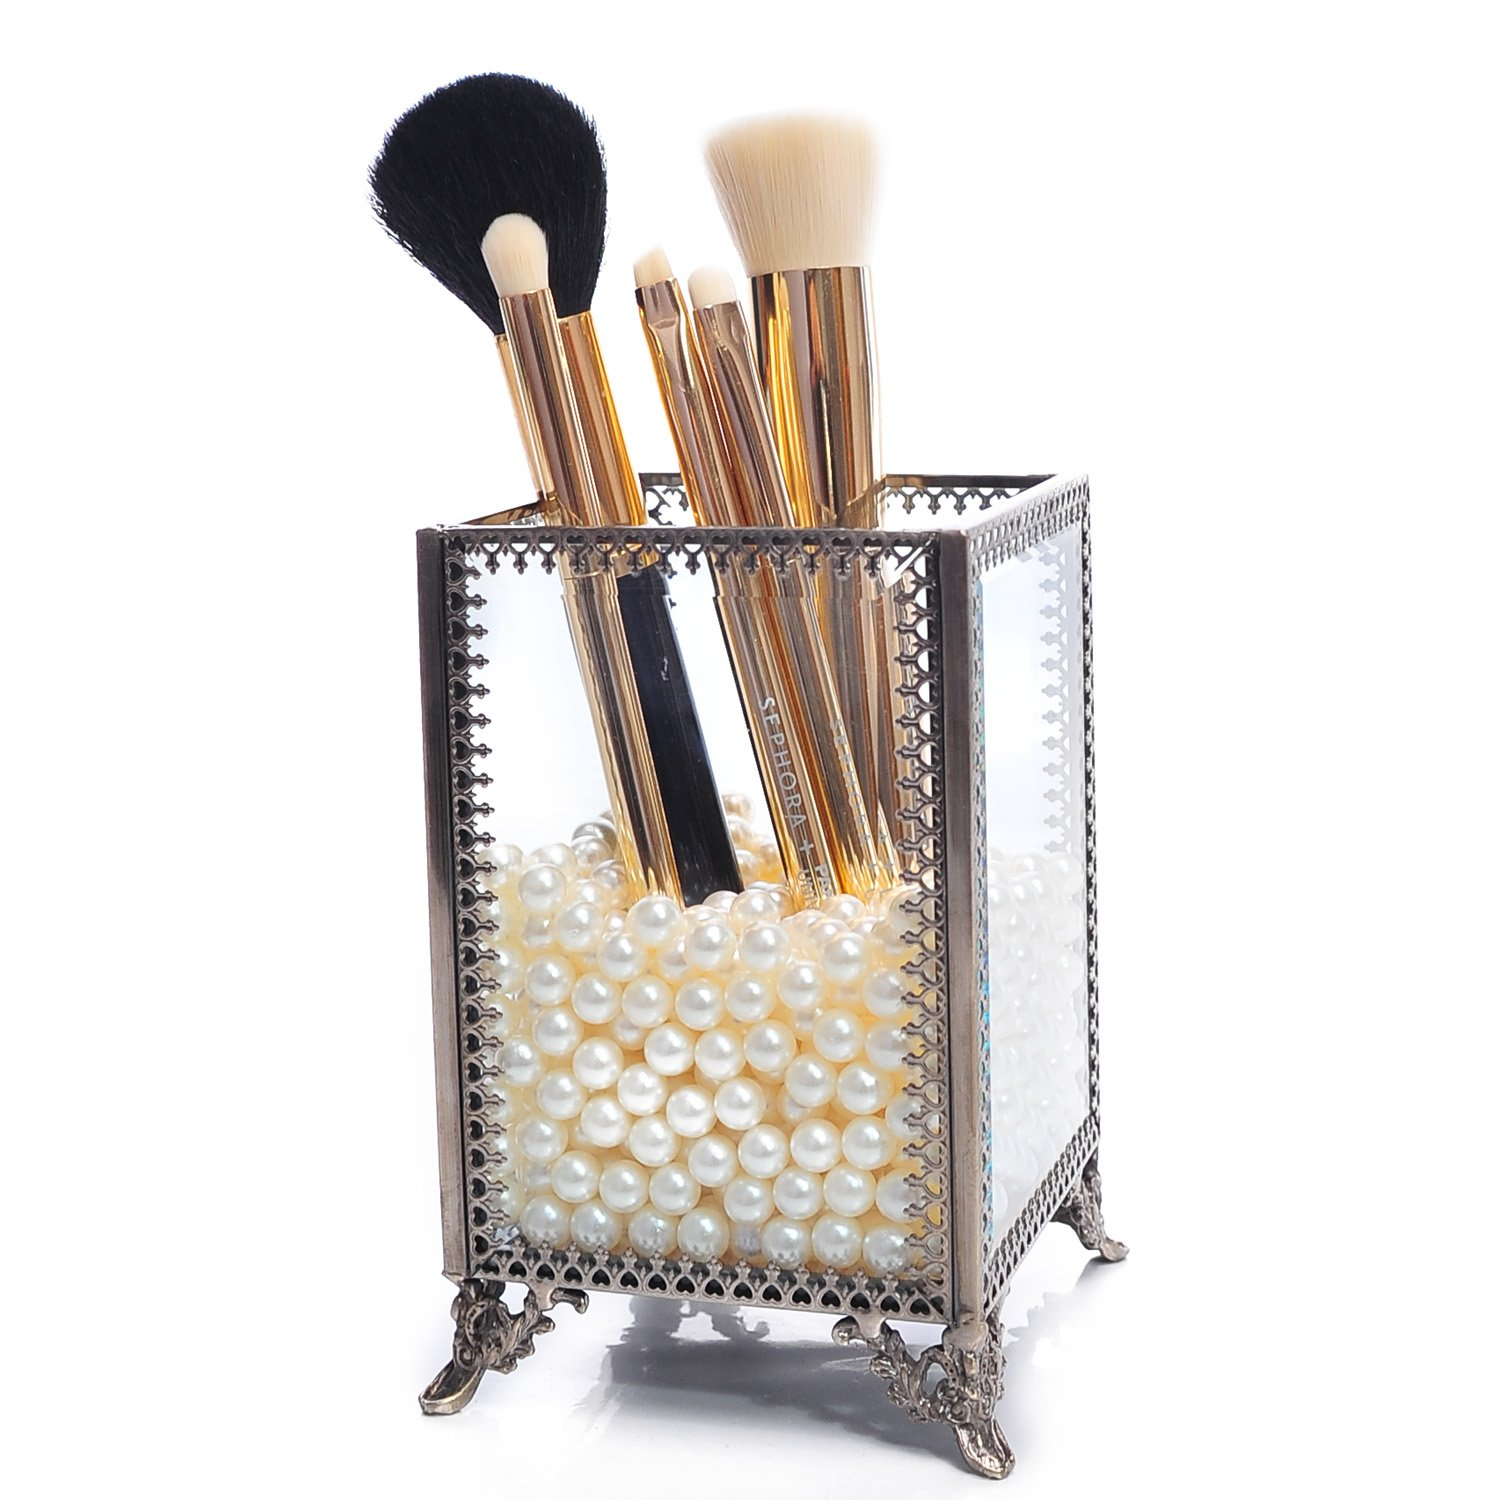 Large Mirror Glass Top Dresser Make Up Organizer Jewelry &Comestic Display, Stackable Cube 6 Drawers Set Dresser Storage for Vanity with Lid,Bathroom Accessories Brushes Container (Brushholder-small)